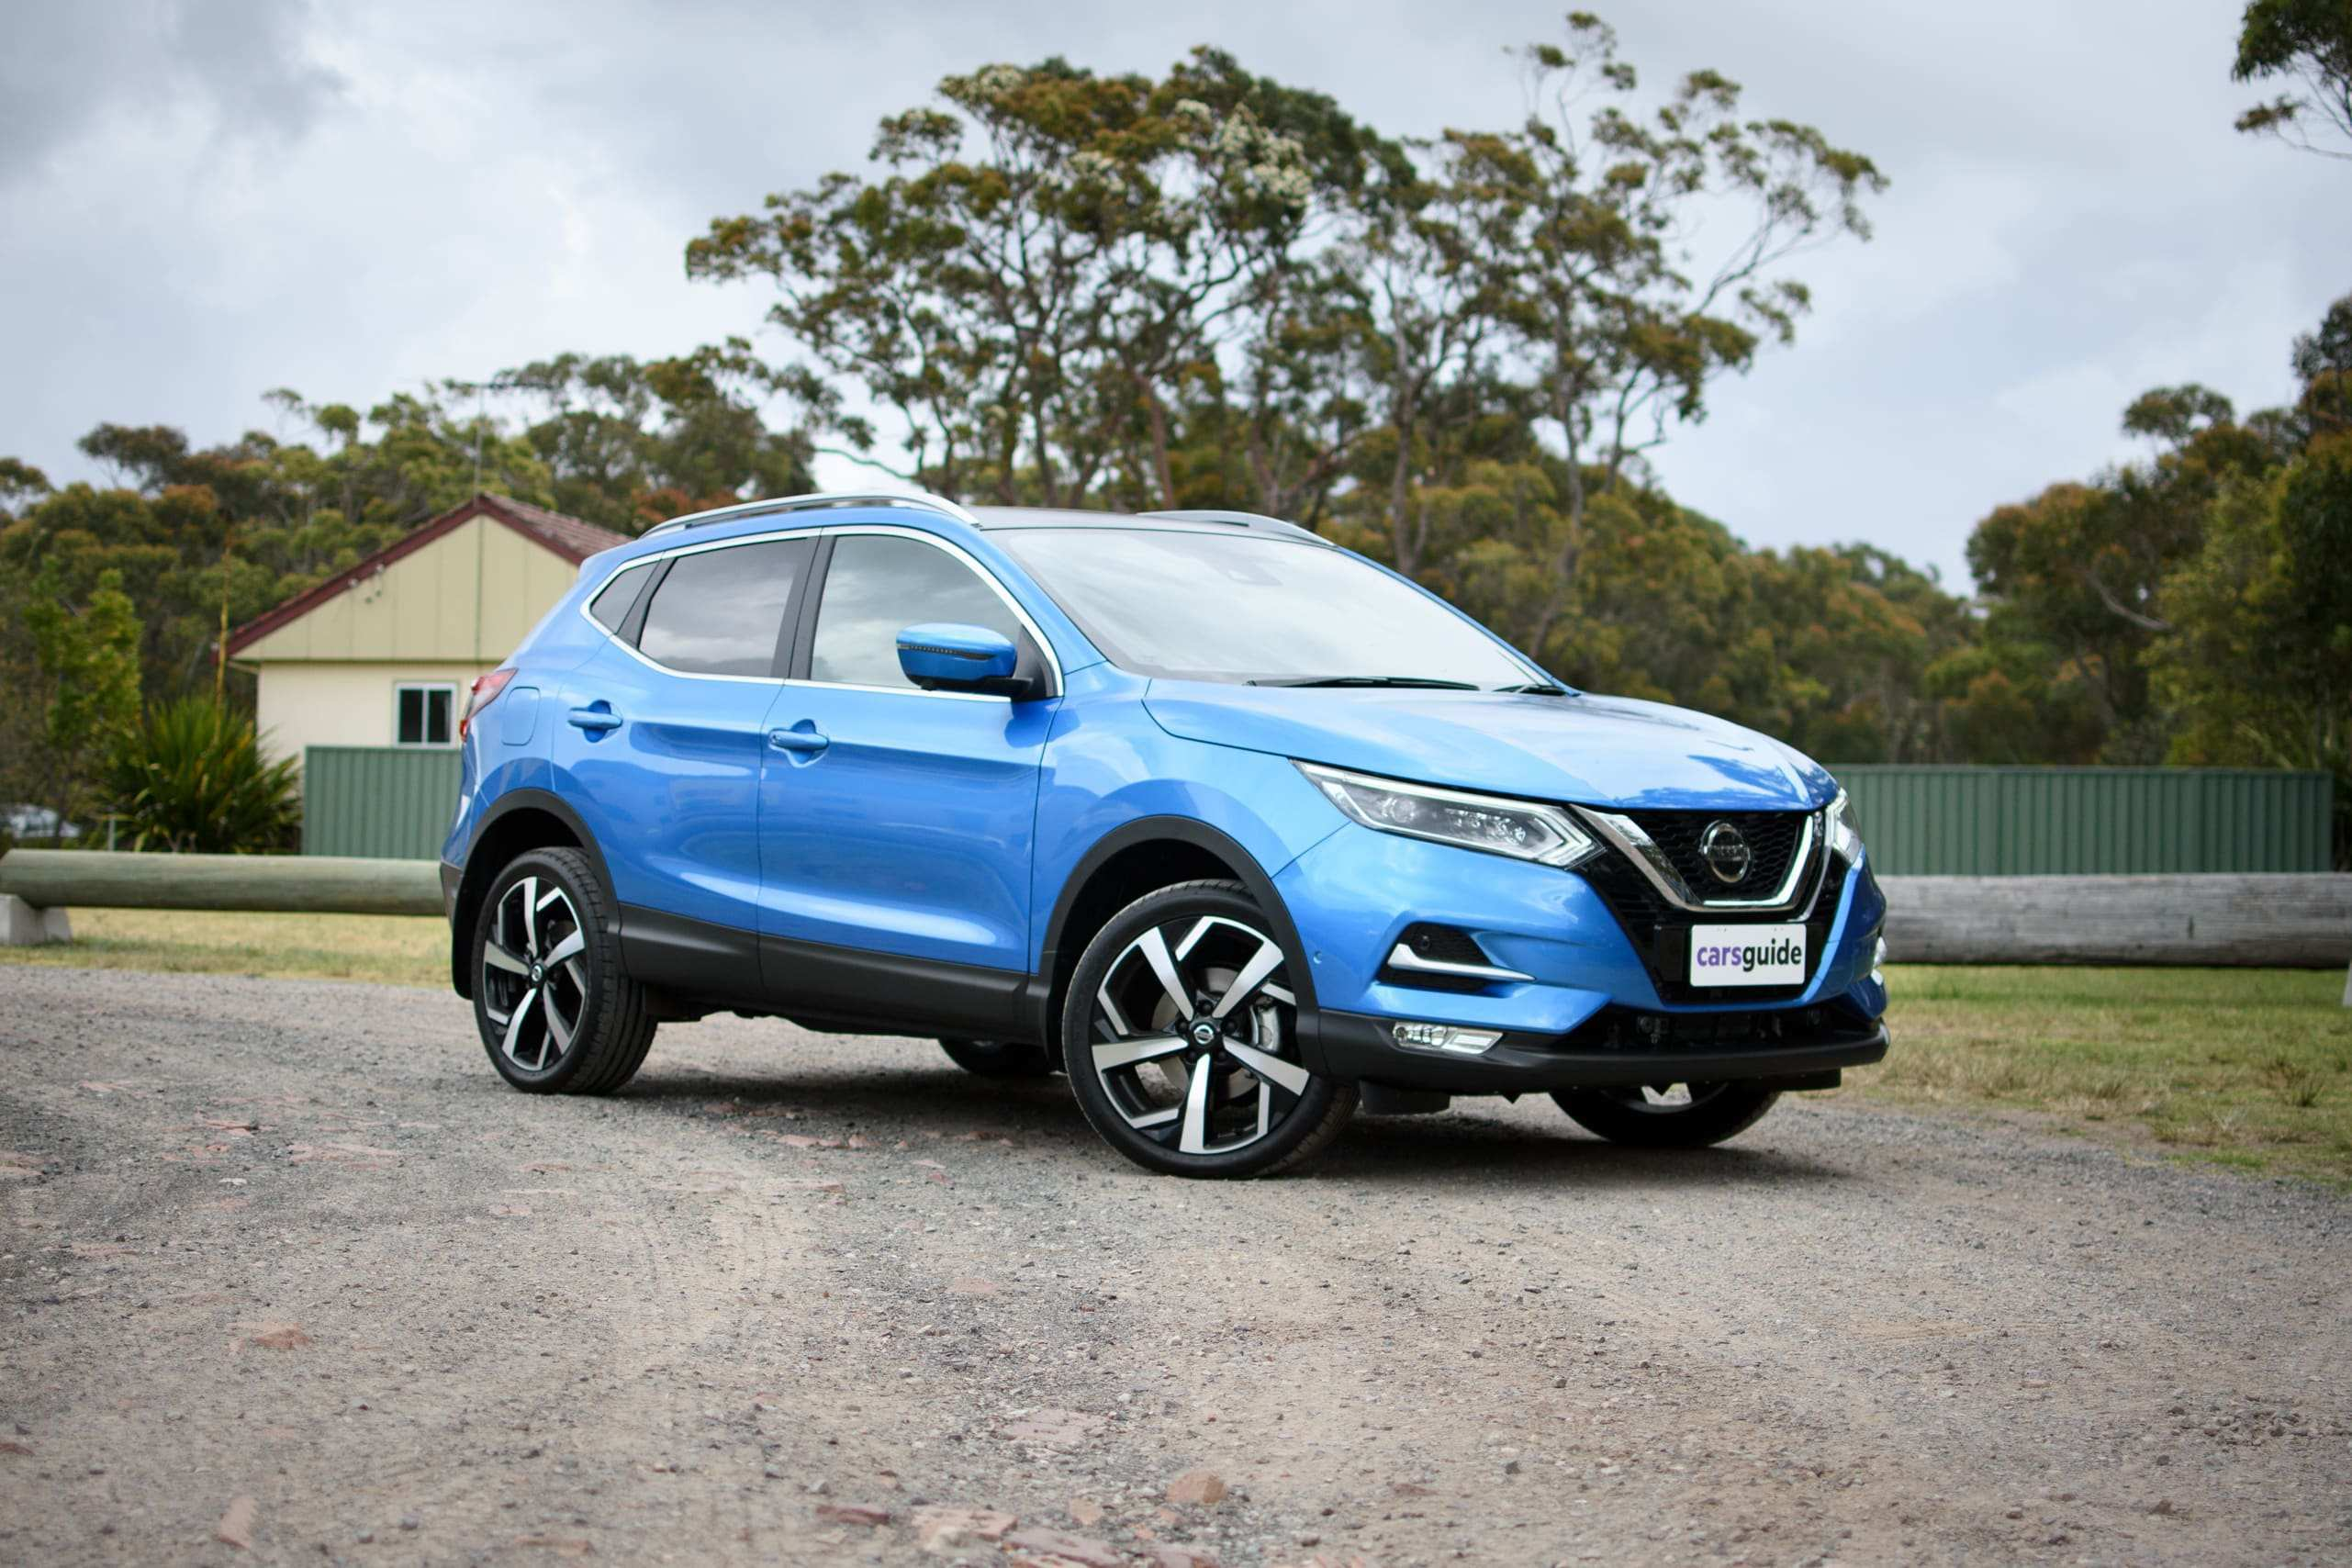 49 The Best When Do Nissan 2019 Come Out Review Specs And Release Date Redesign for Best When Do Nissan 2019 Come Out Review Specs And Release Date